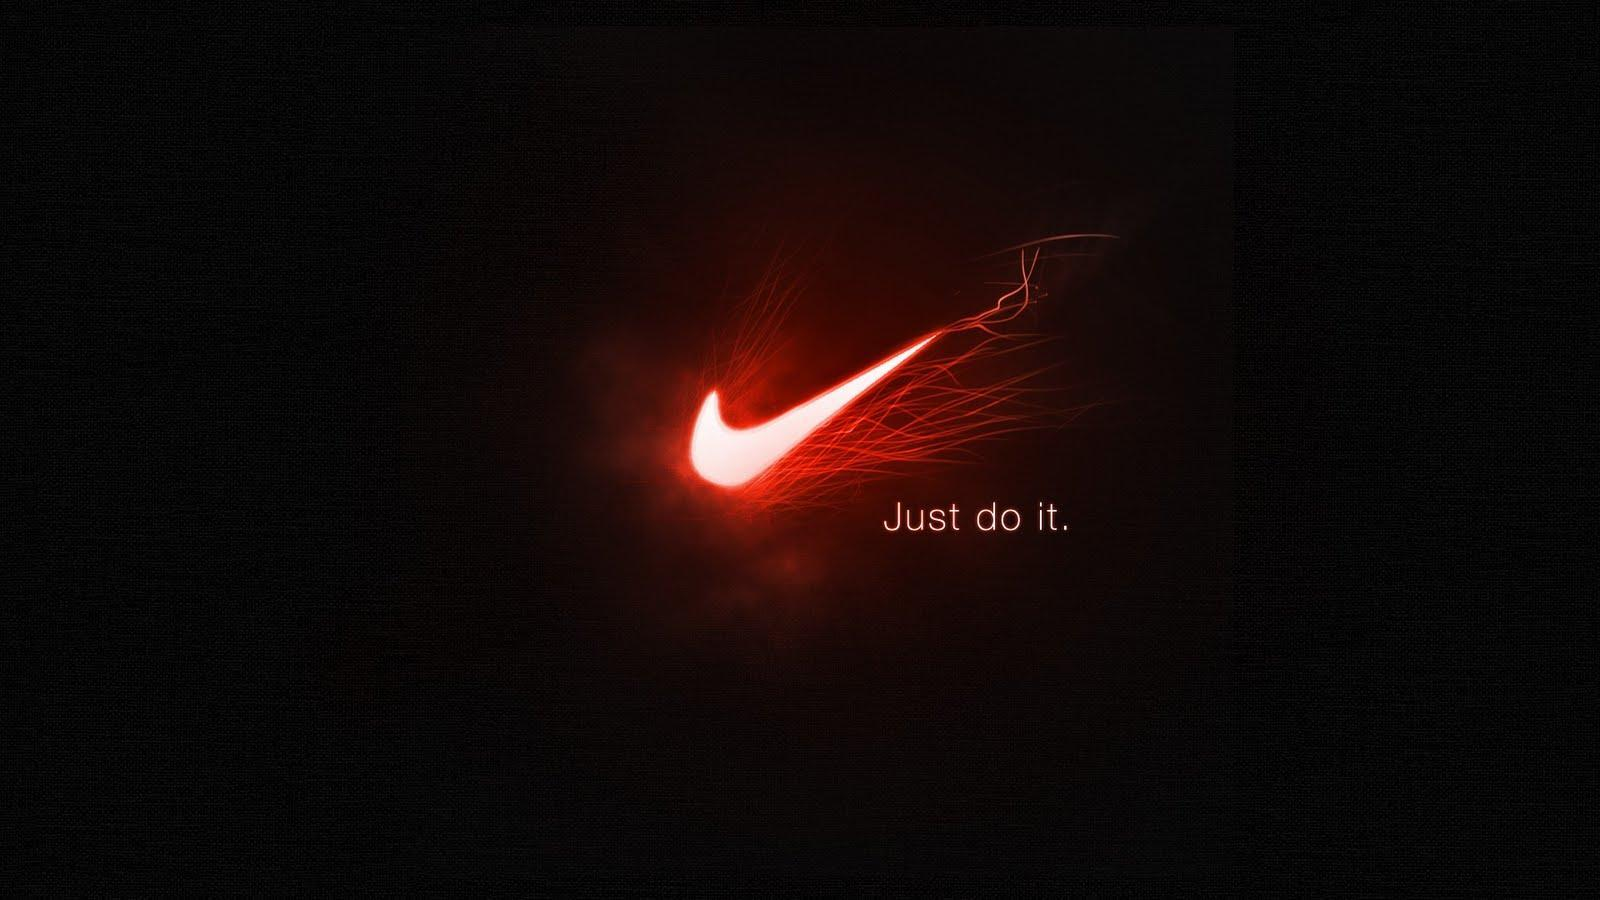 Nike Animated Wallpaper Nike Wallpapers For Laptop Wallpaper Cave